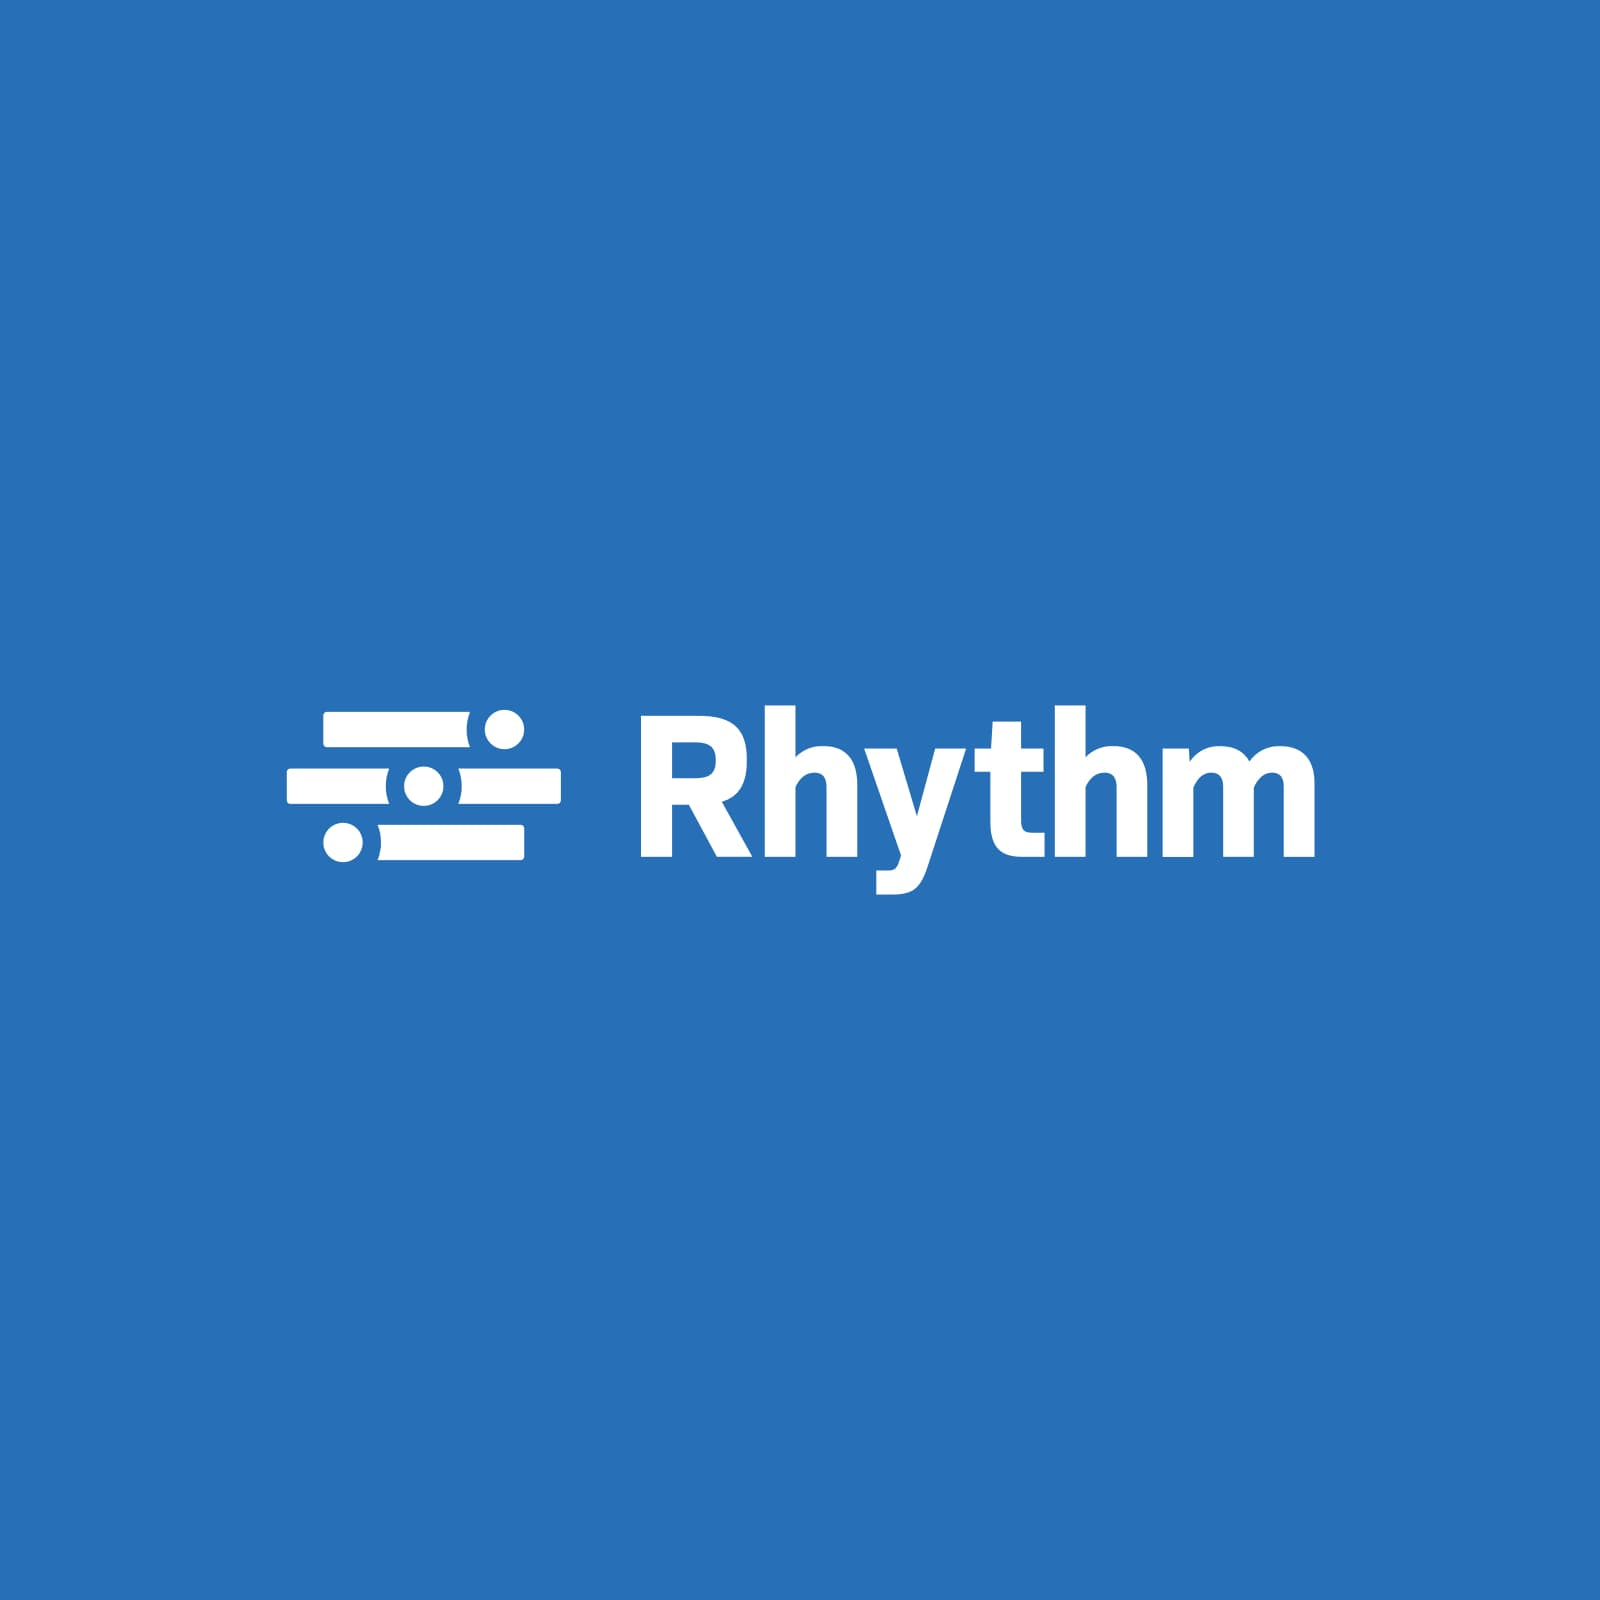 White Rhythm logo on blue